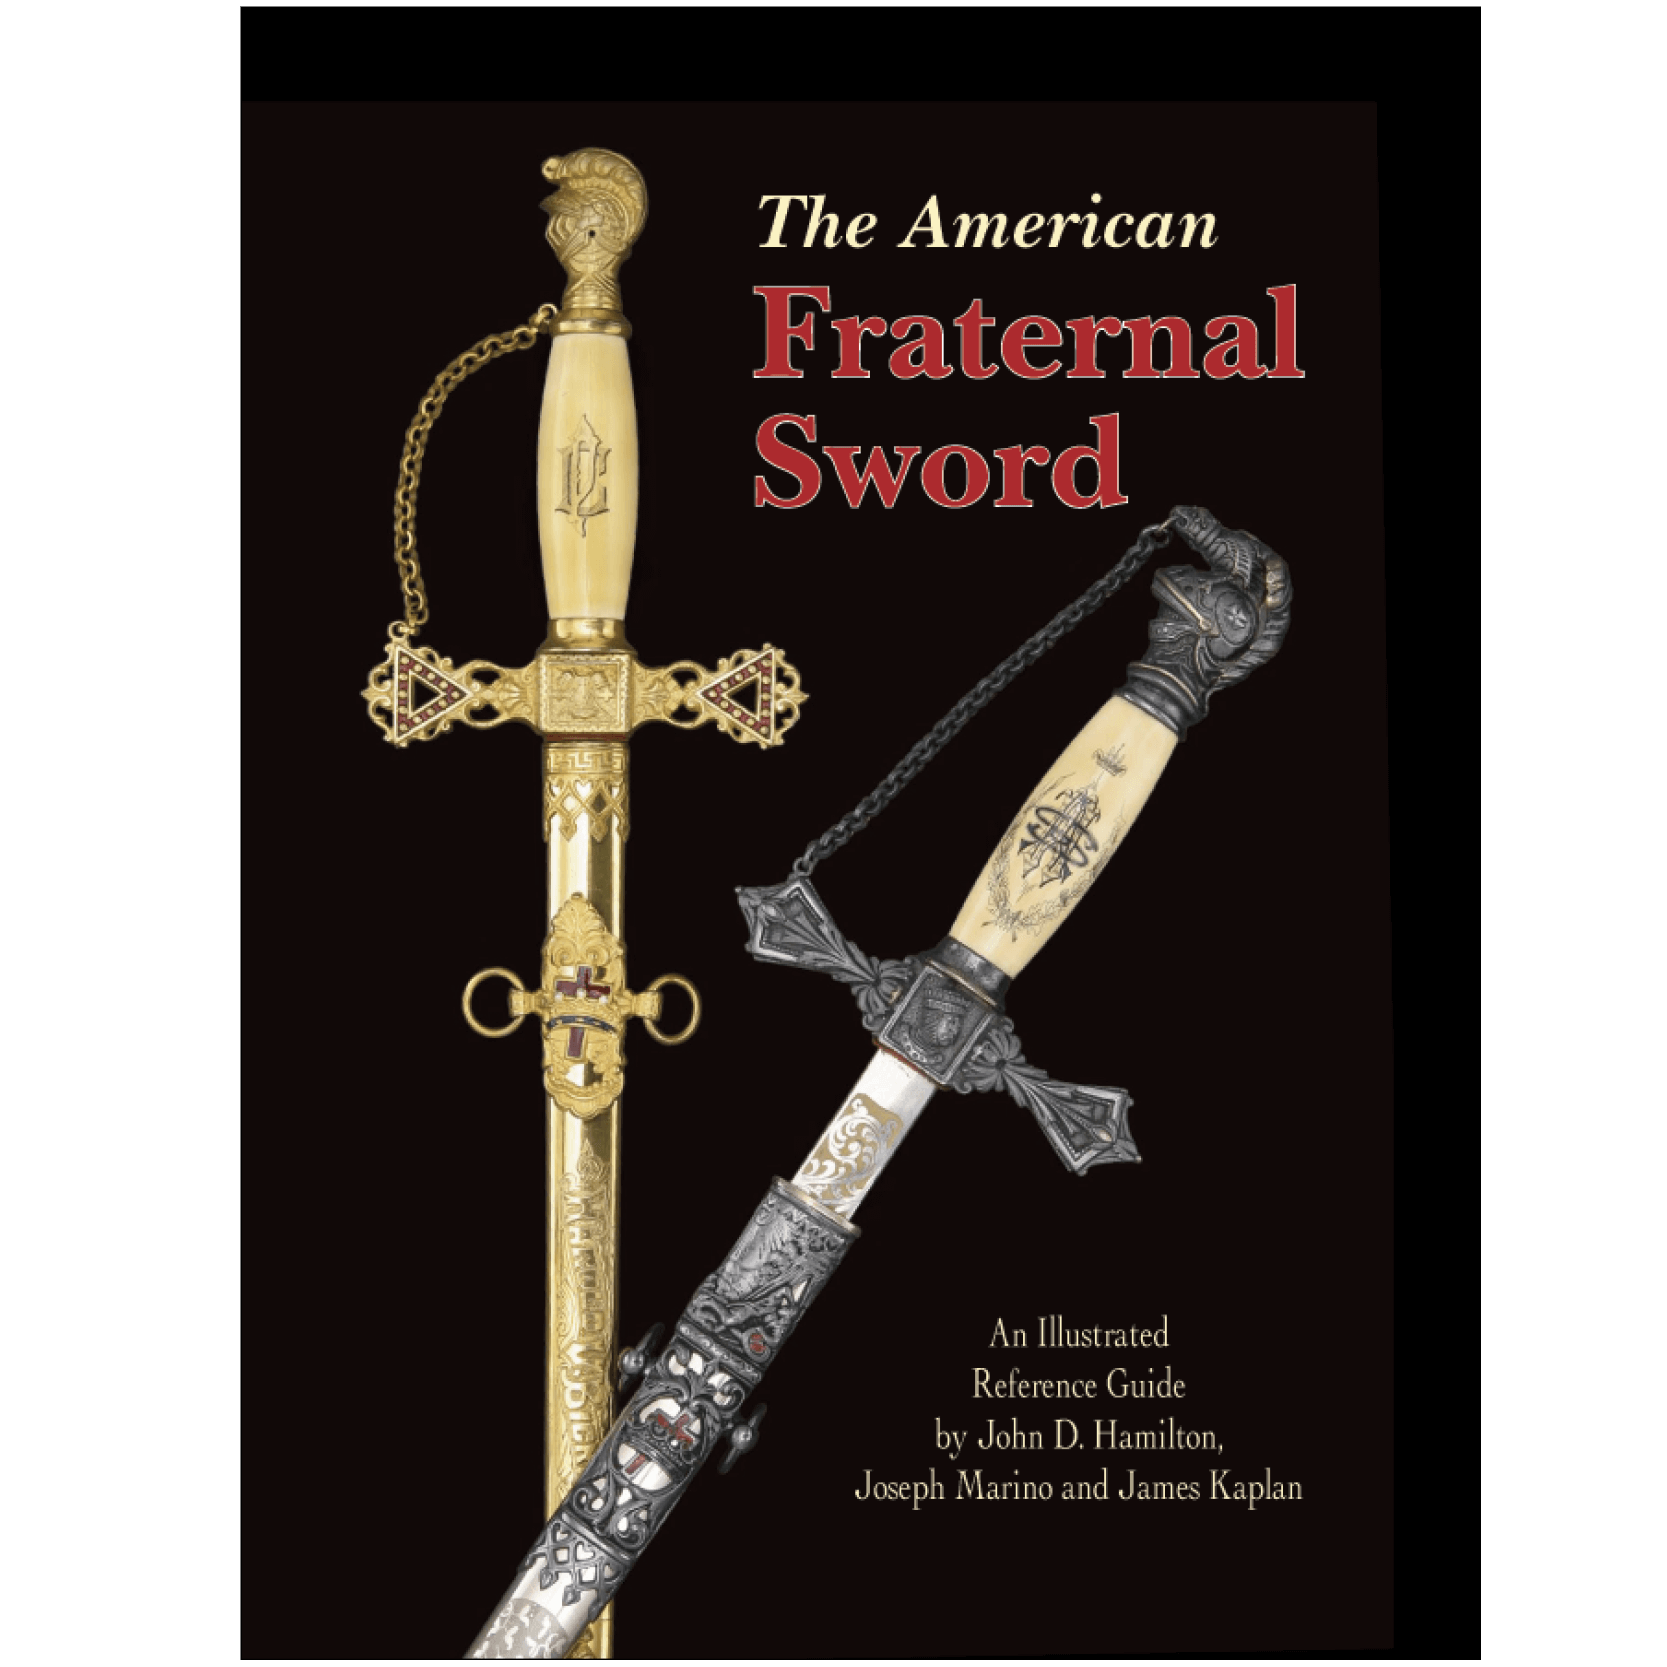 The American Fraternal Sword By Hamilton, Kaplan & Marino